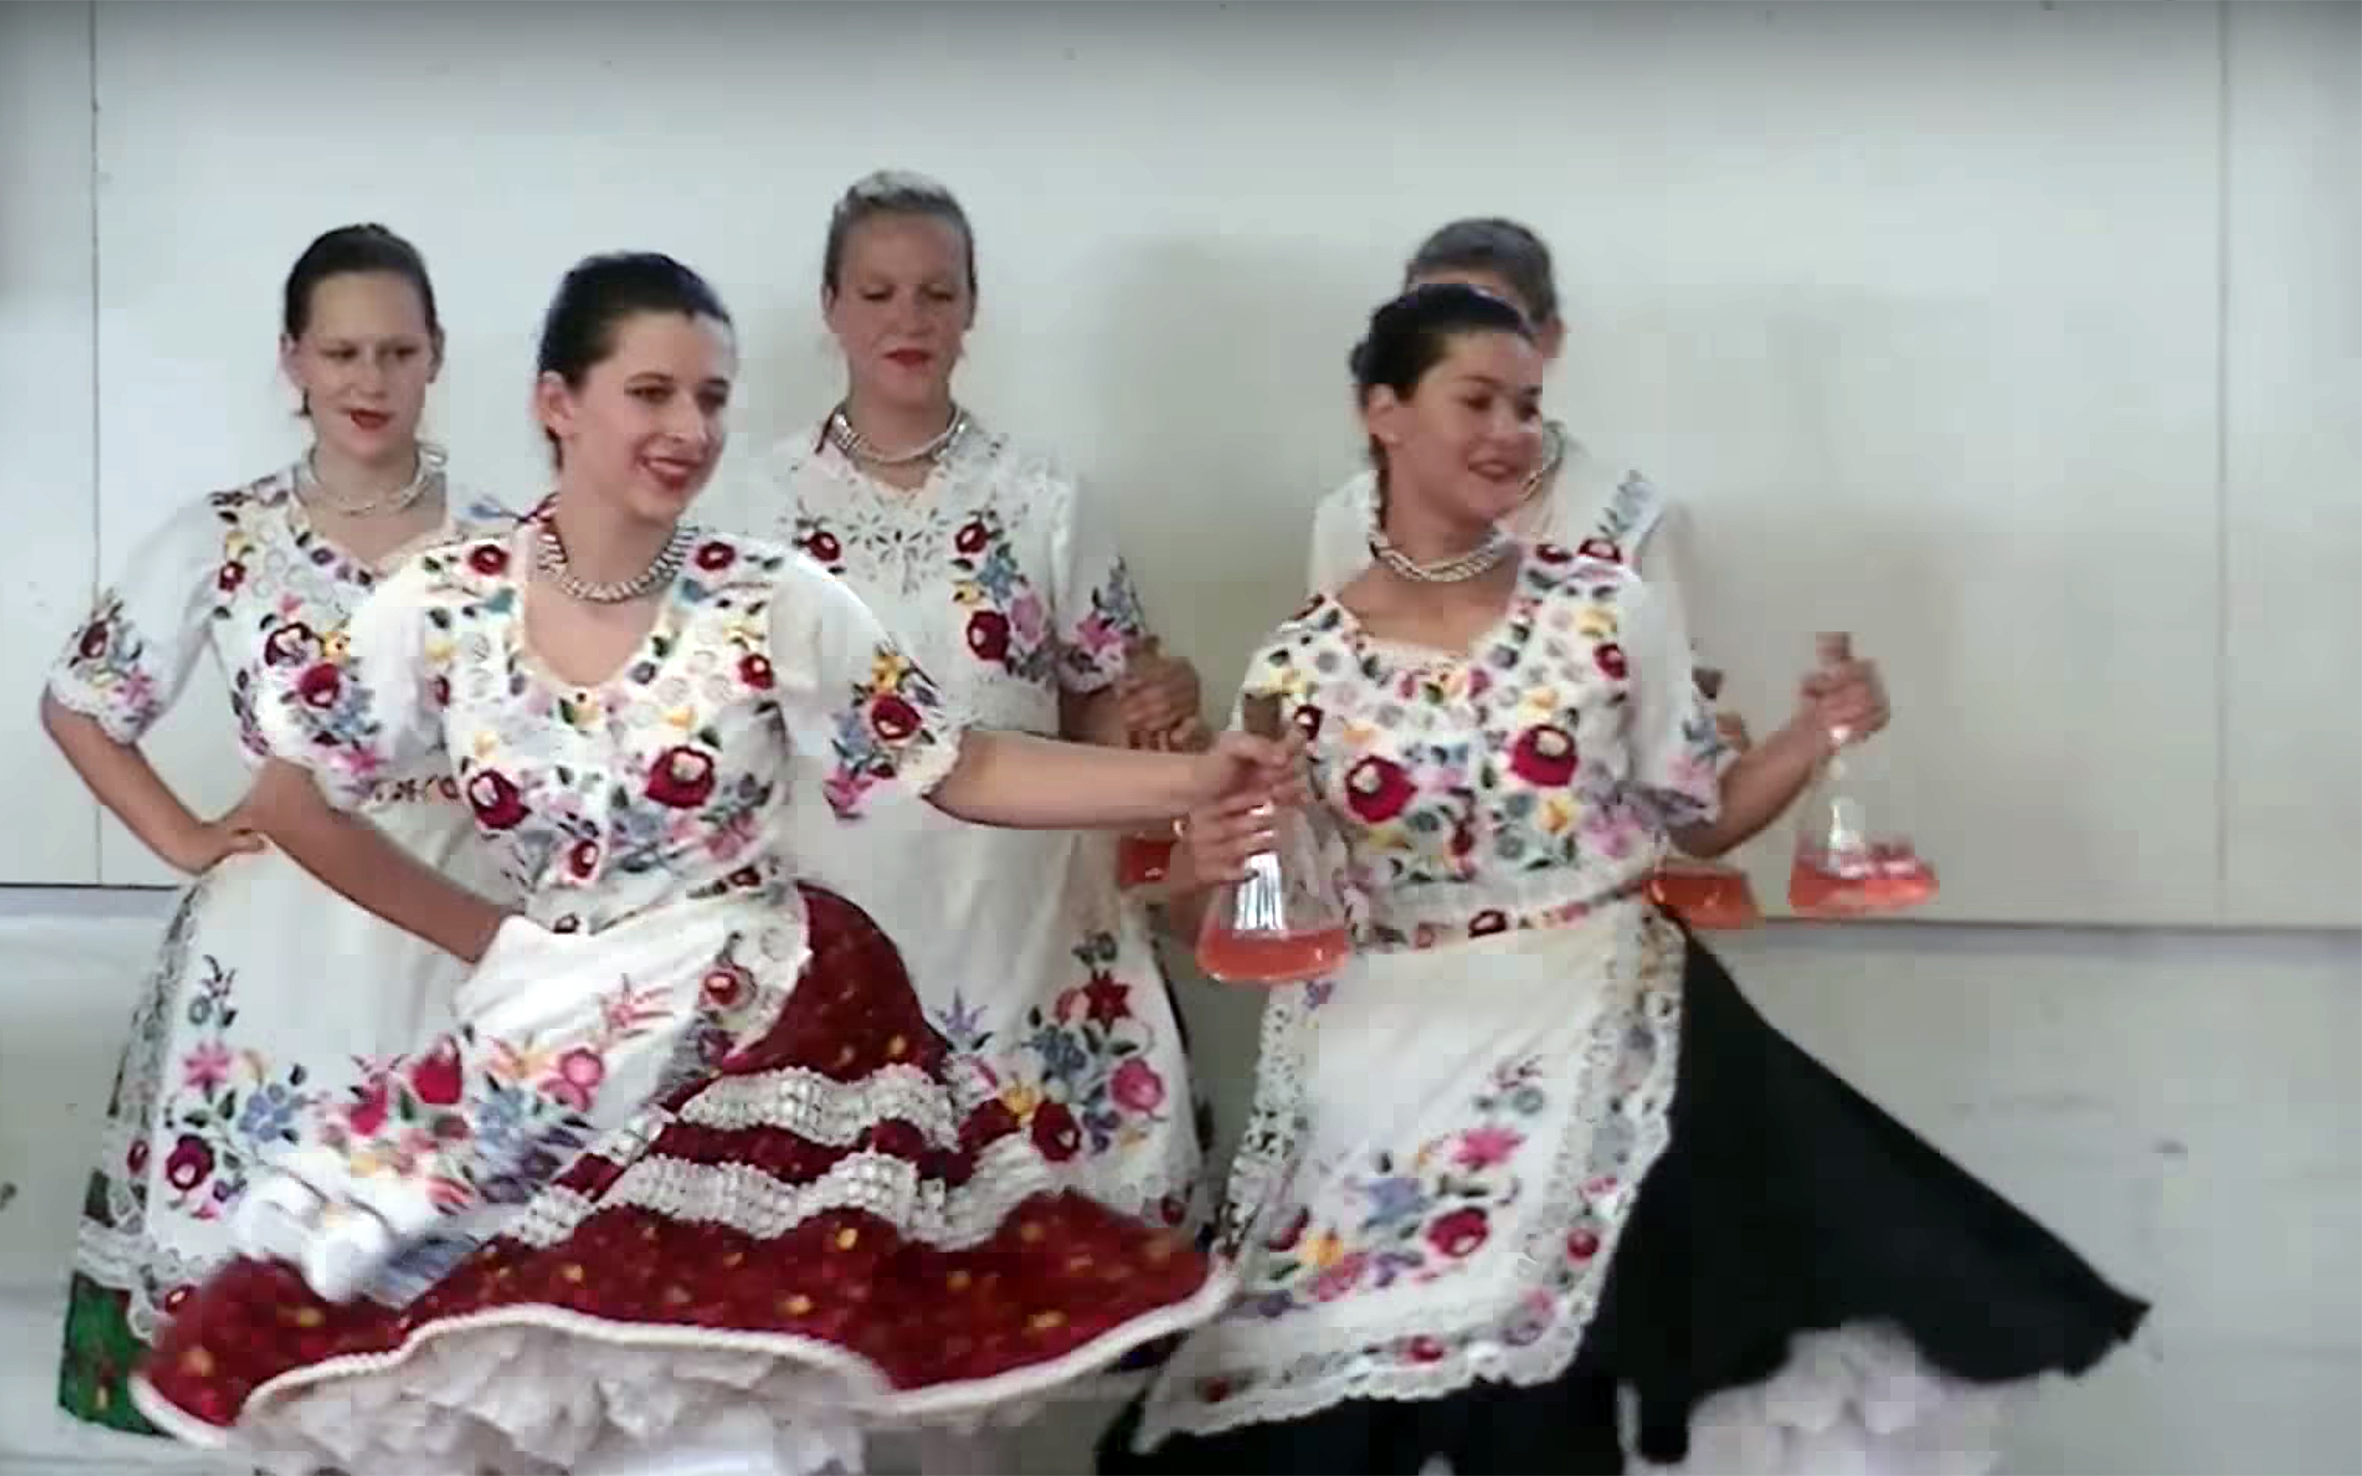 934.Üveges / Hungary - Üveges is a Hungarian Folk Dance, a Bottle dance, performed, especially at weddings, by the cooks.